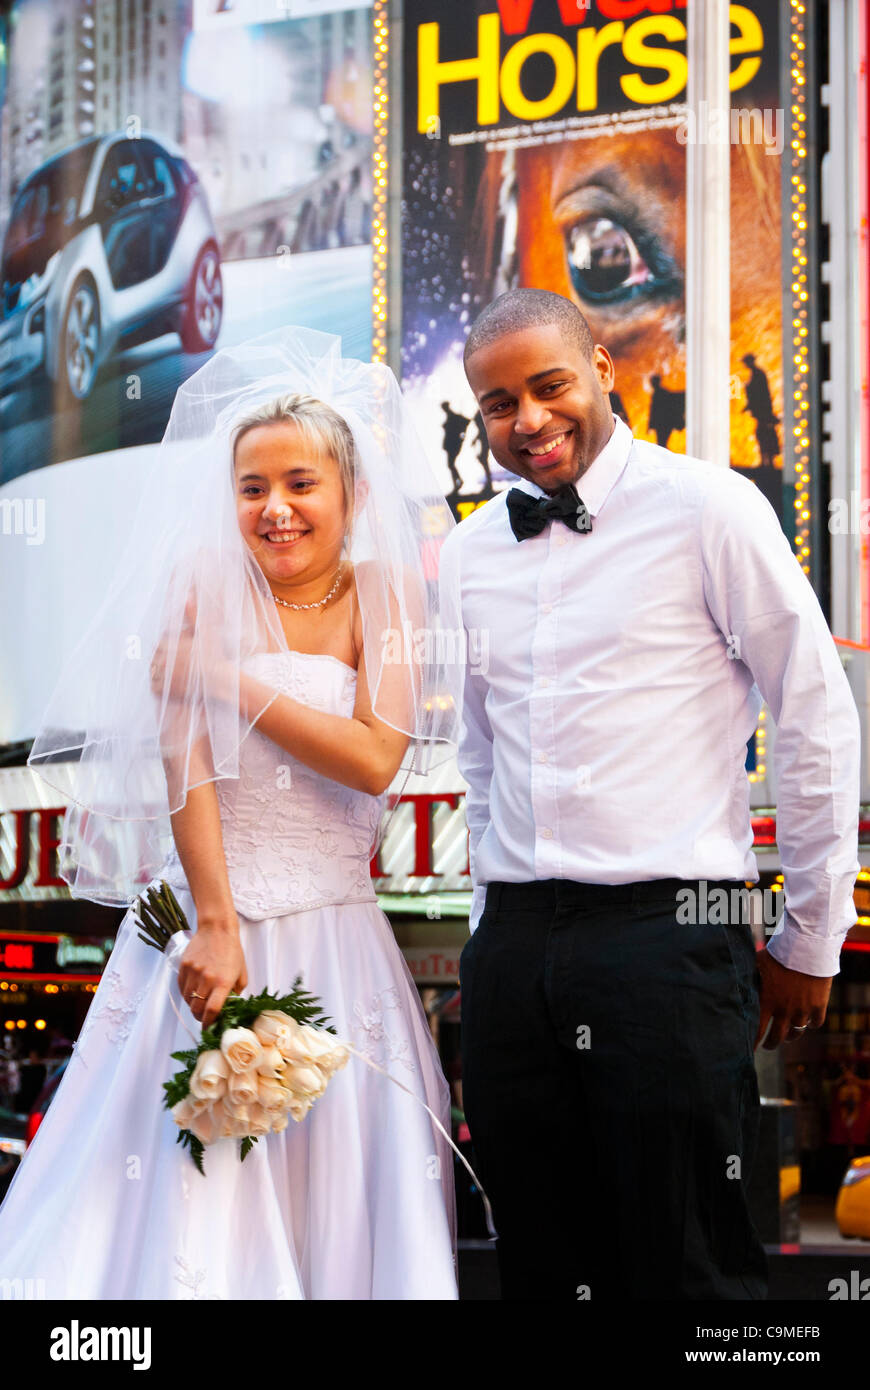 Manhattan, New York, USA: A bride and groom pose for pictures in Times Square, NYC, on Tuesday, January 24, 2012, Stock Photo